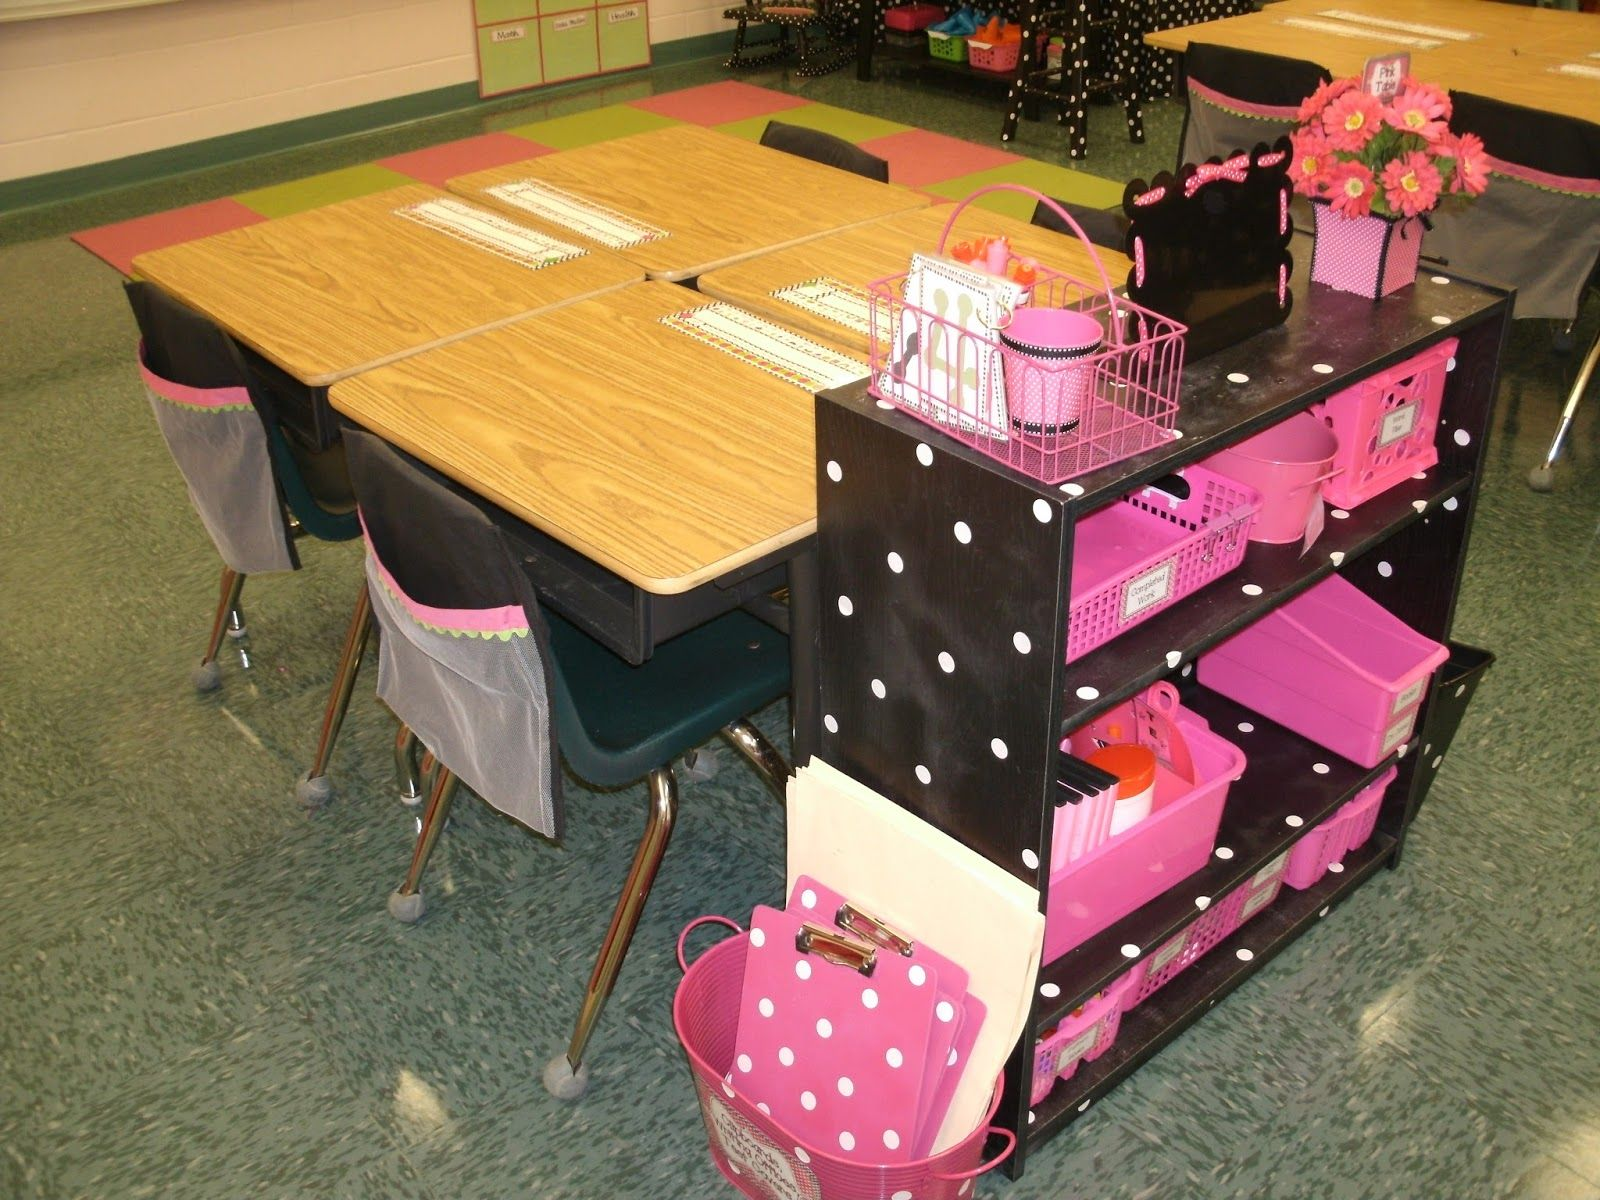 Five for Friday- Supply shelves, sewing blinds, and library fun!